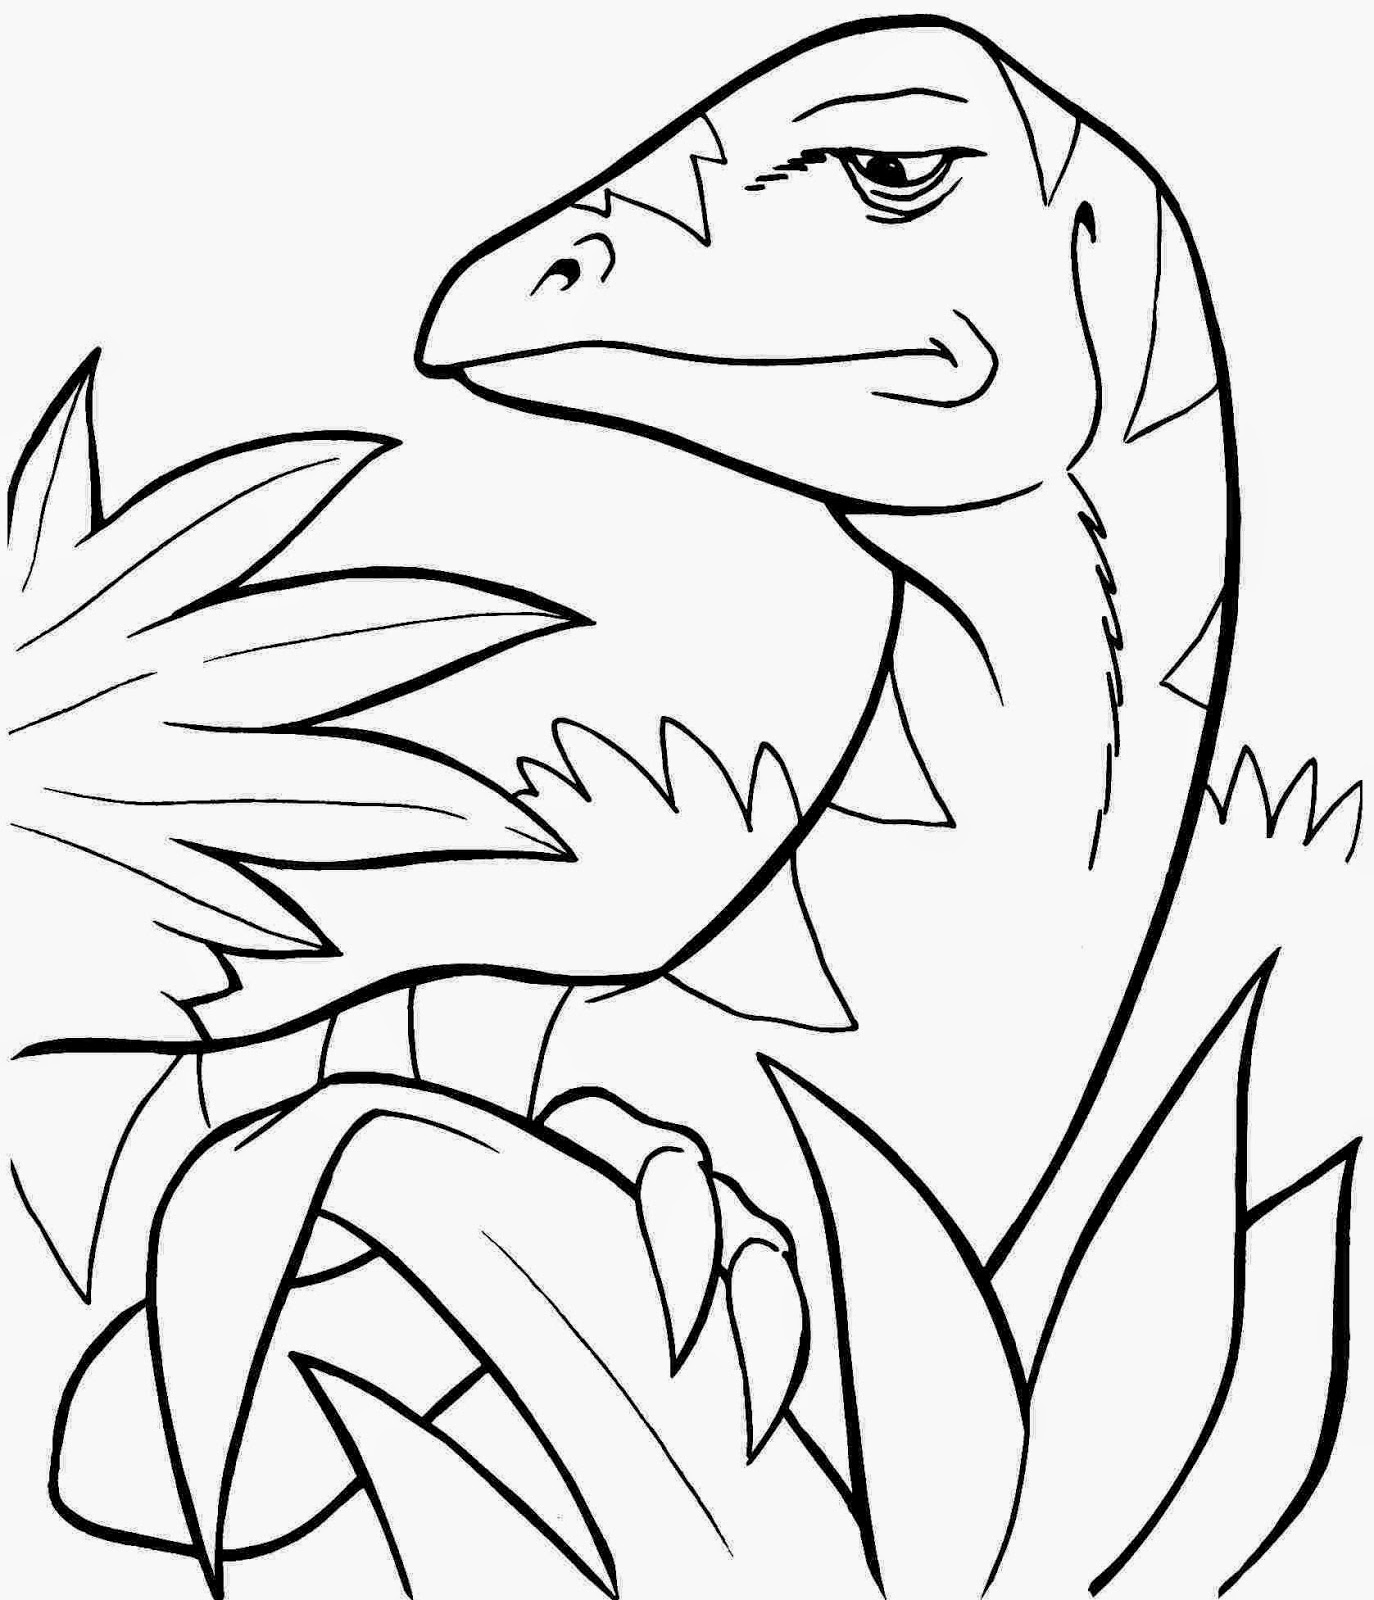 dinosaurs colouring pages baby dinosaur coloring pages for preschoolers activity dinosaurs pages colouring